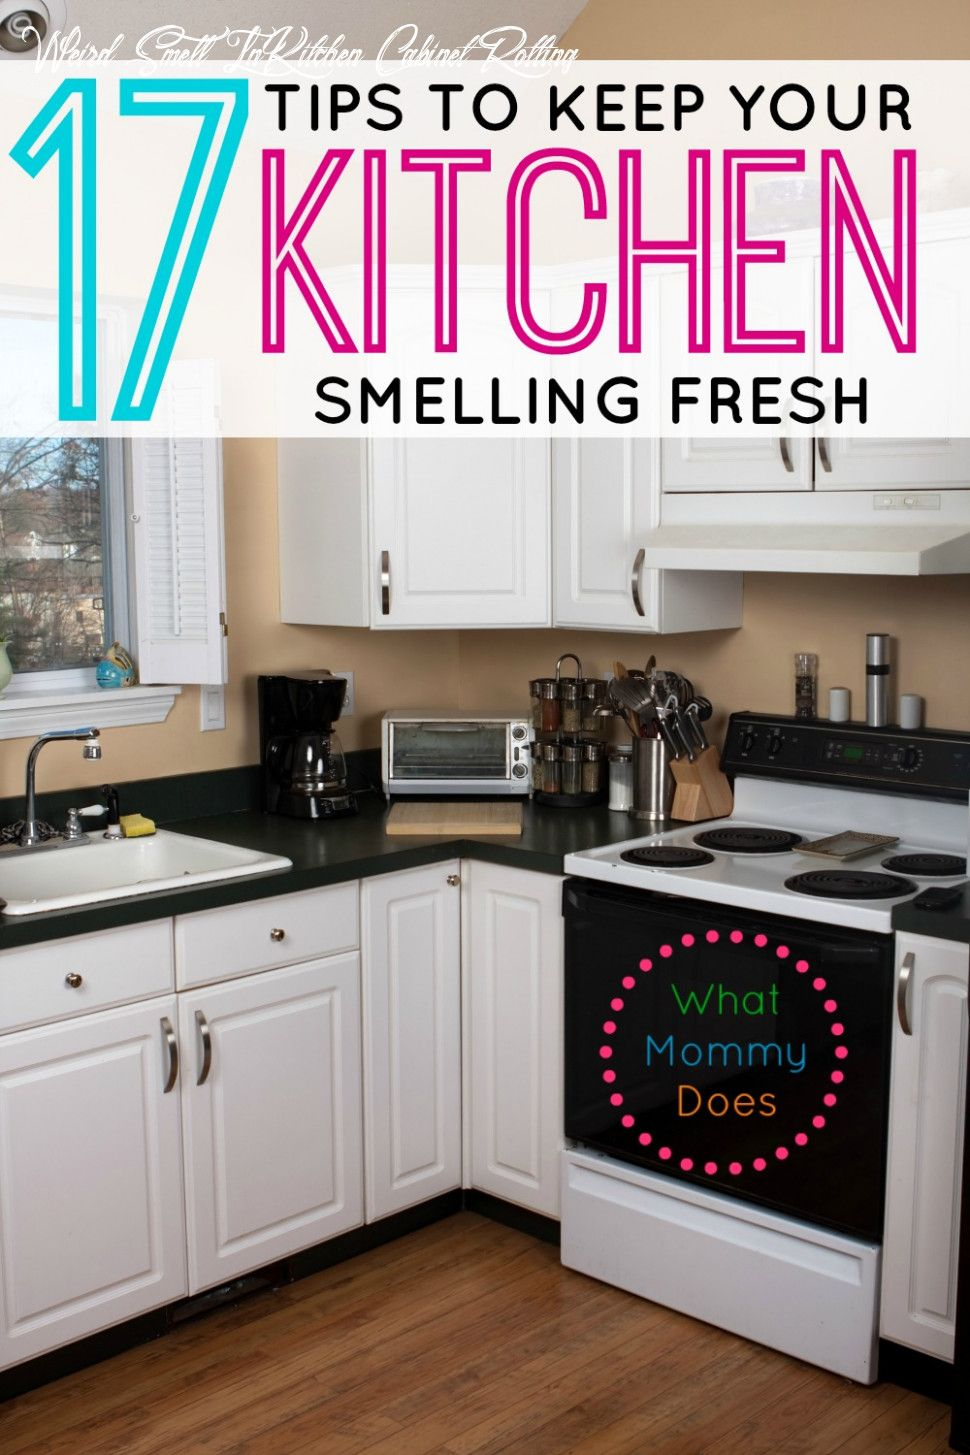 Weird Smell In Kitchen Cabinet Rotting In 2020 Kitchen Smells Kitchen Odor House Cleaning Tips